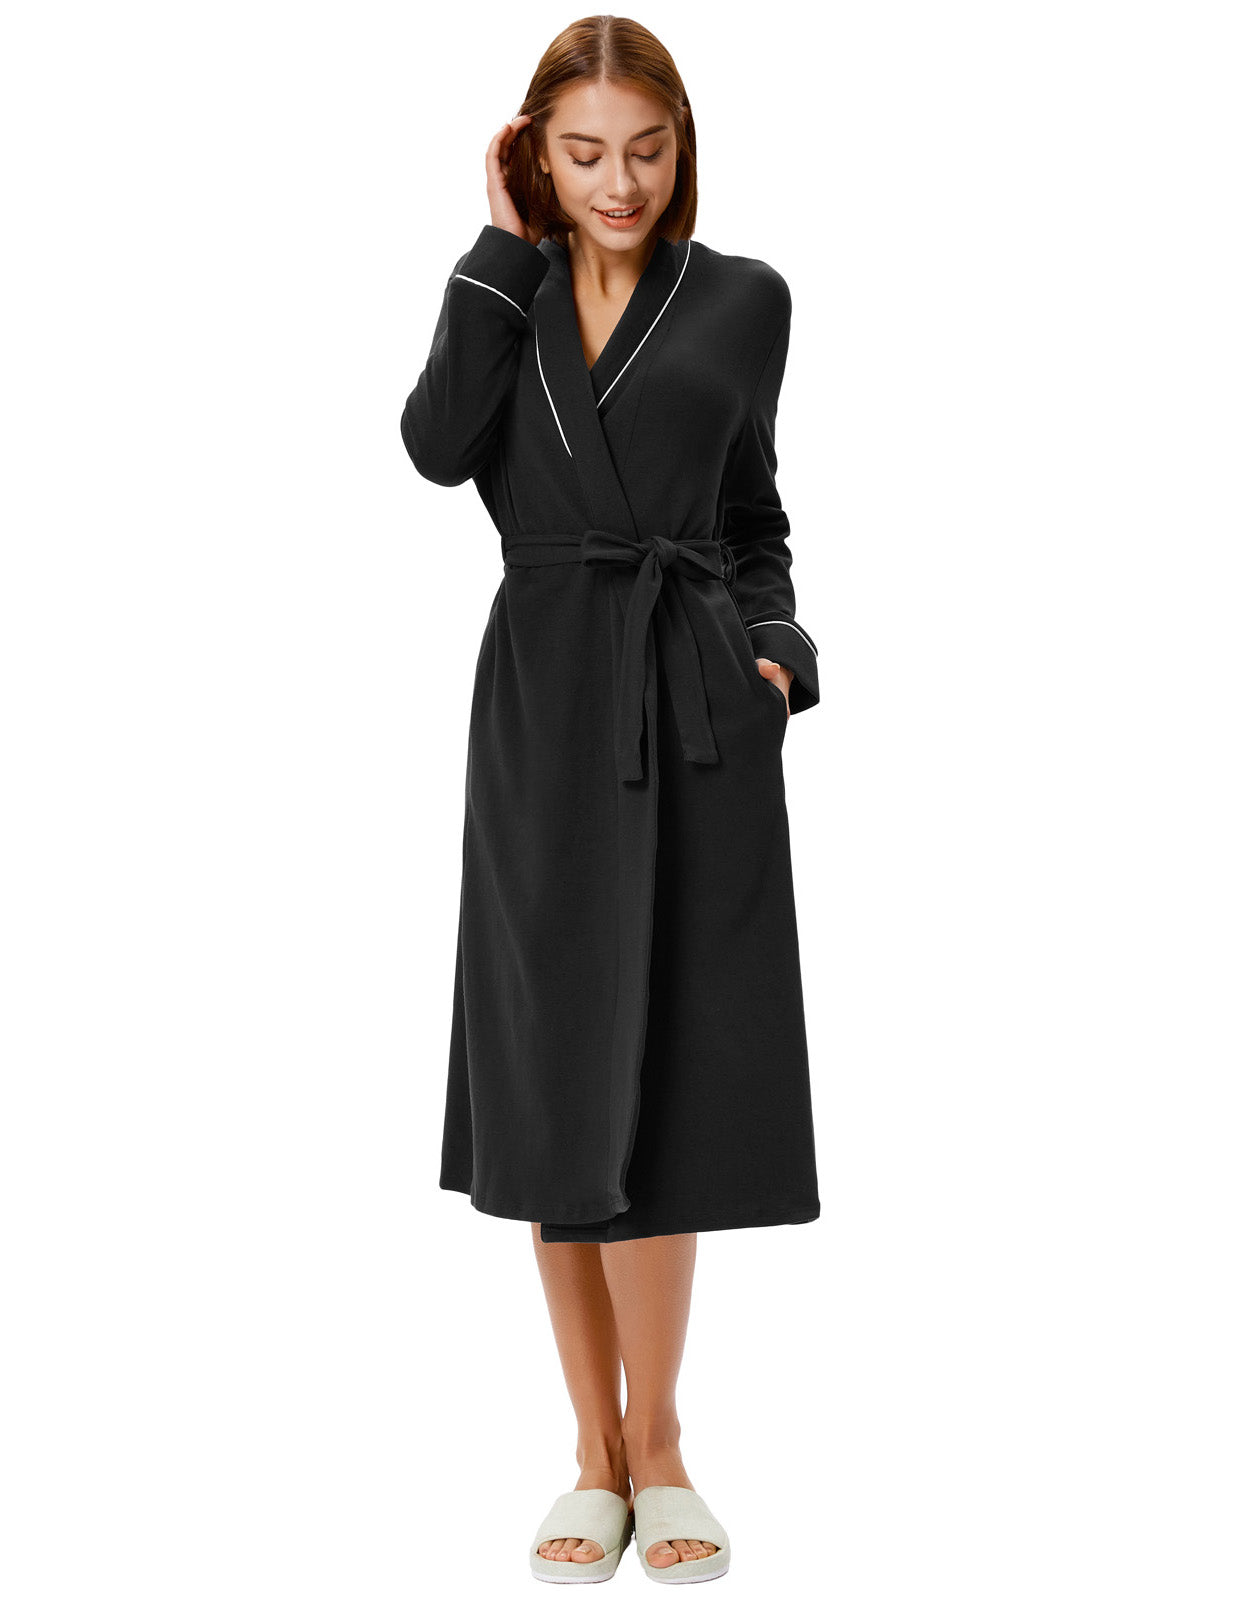 ... 2018 Ladies Luxury Cotton Soft Bath Spa Robe Towelling Dressing Gown  With Belt ... a816598f5